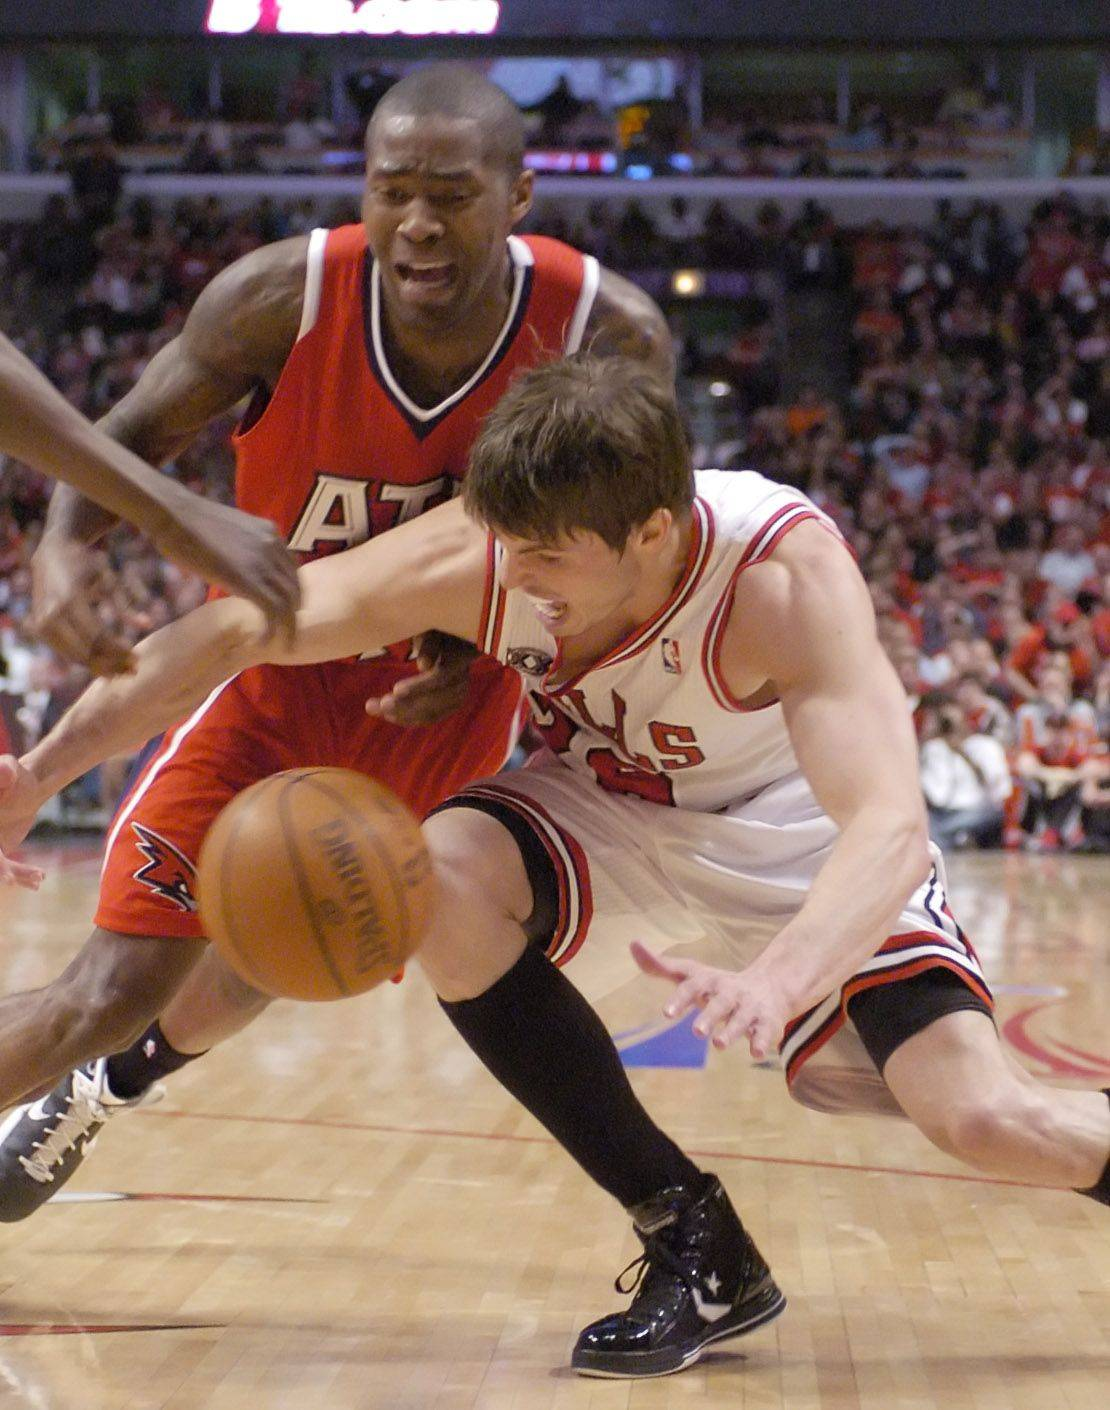 Kyle Korver of the Bulls nearly turns the ball over to Jamal Crawford of the Hawks Wednesday.